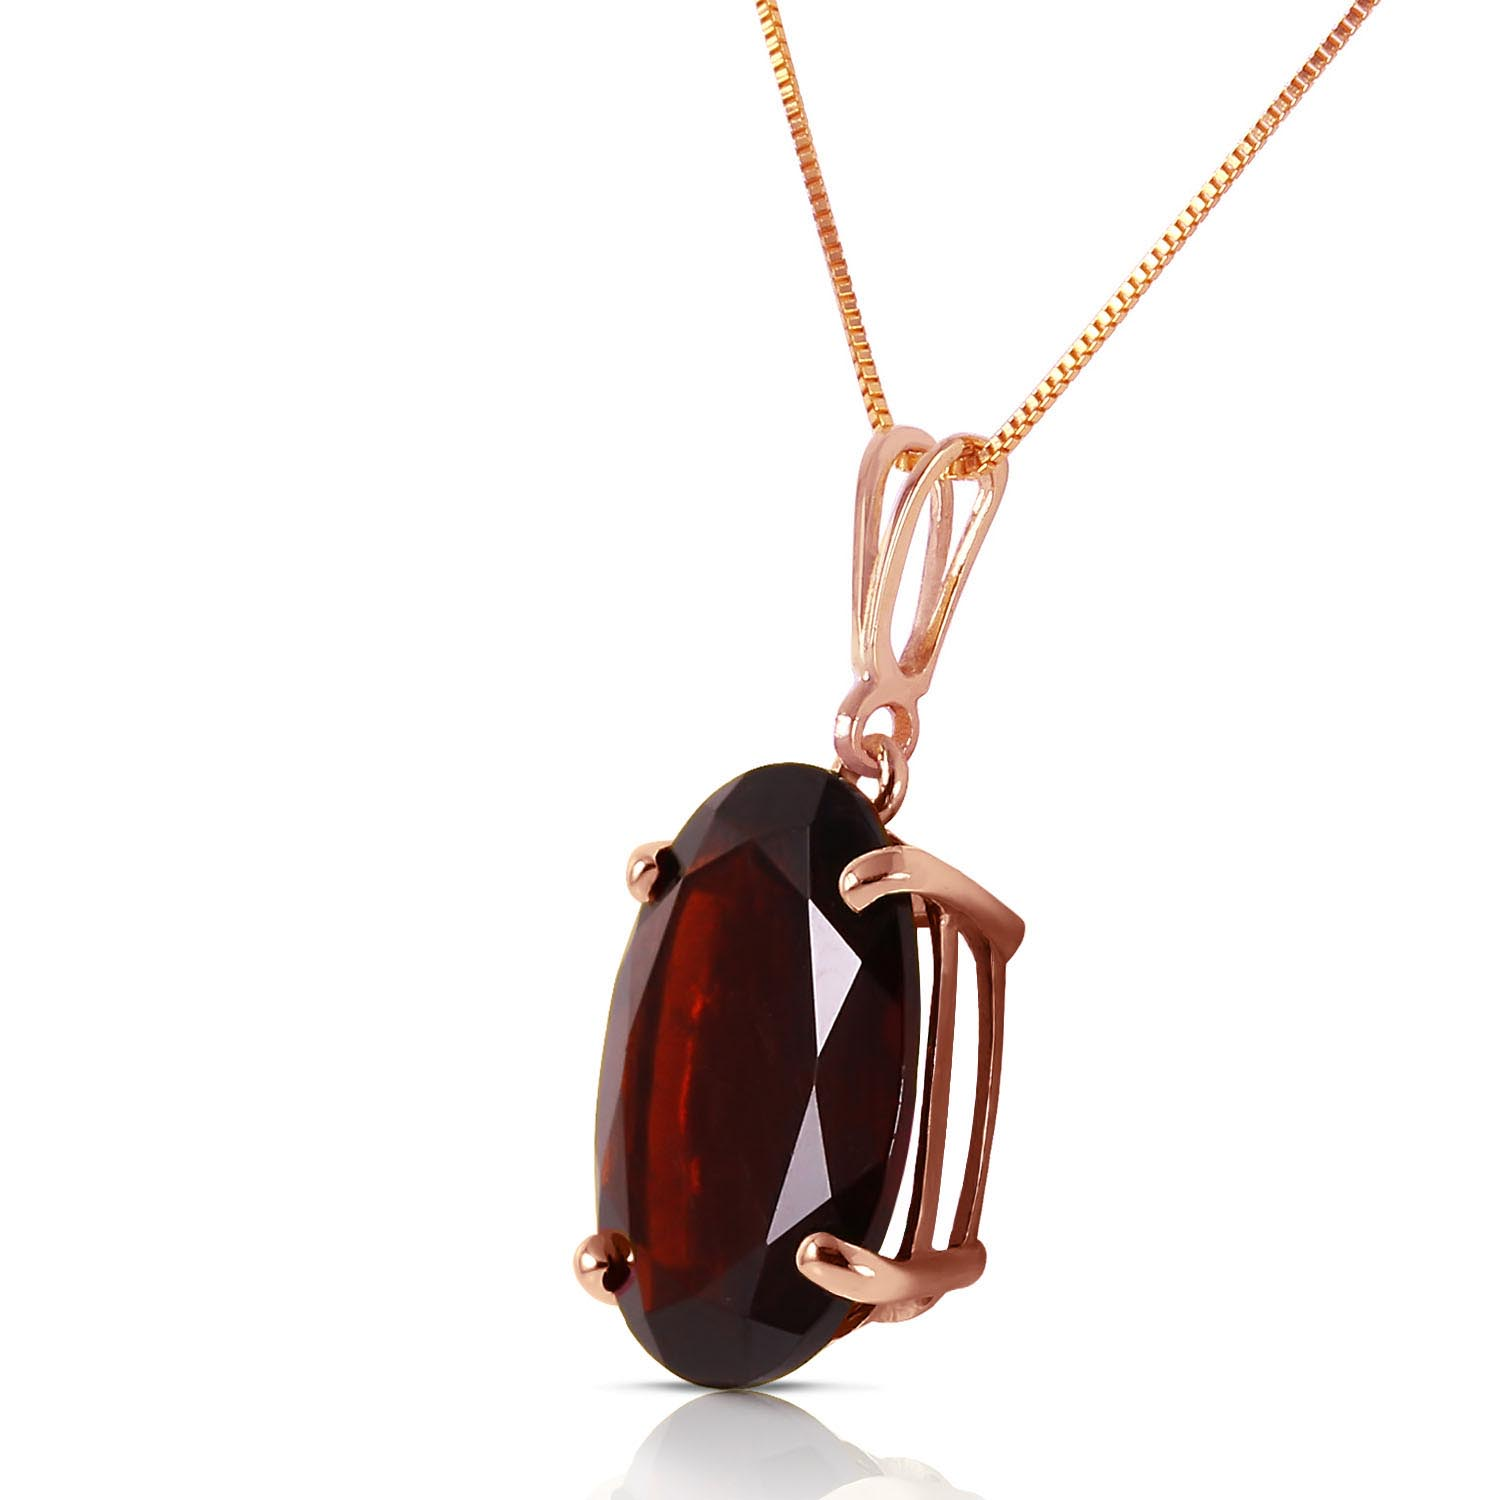 Oval Cut Garnet Pendant Necklace 6.0ct in 9ct Rose Gold